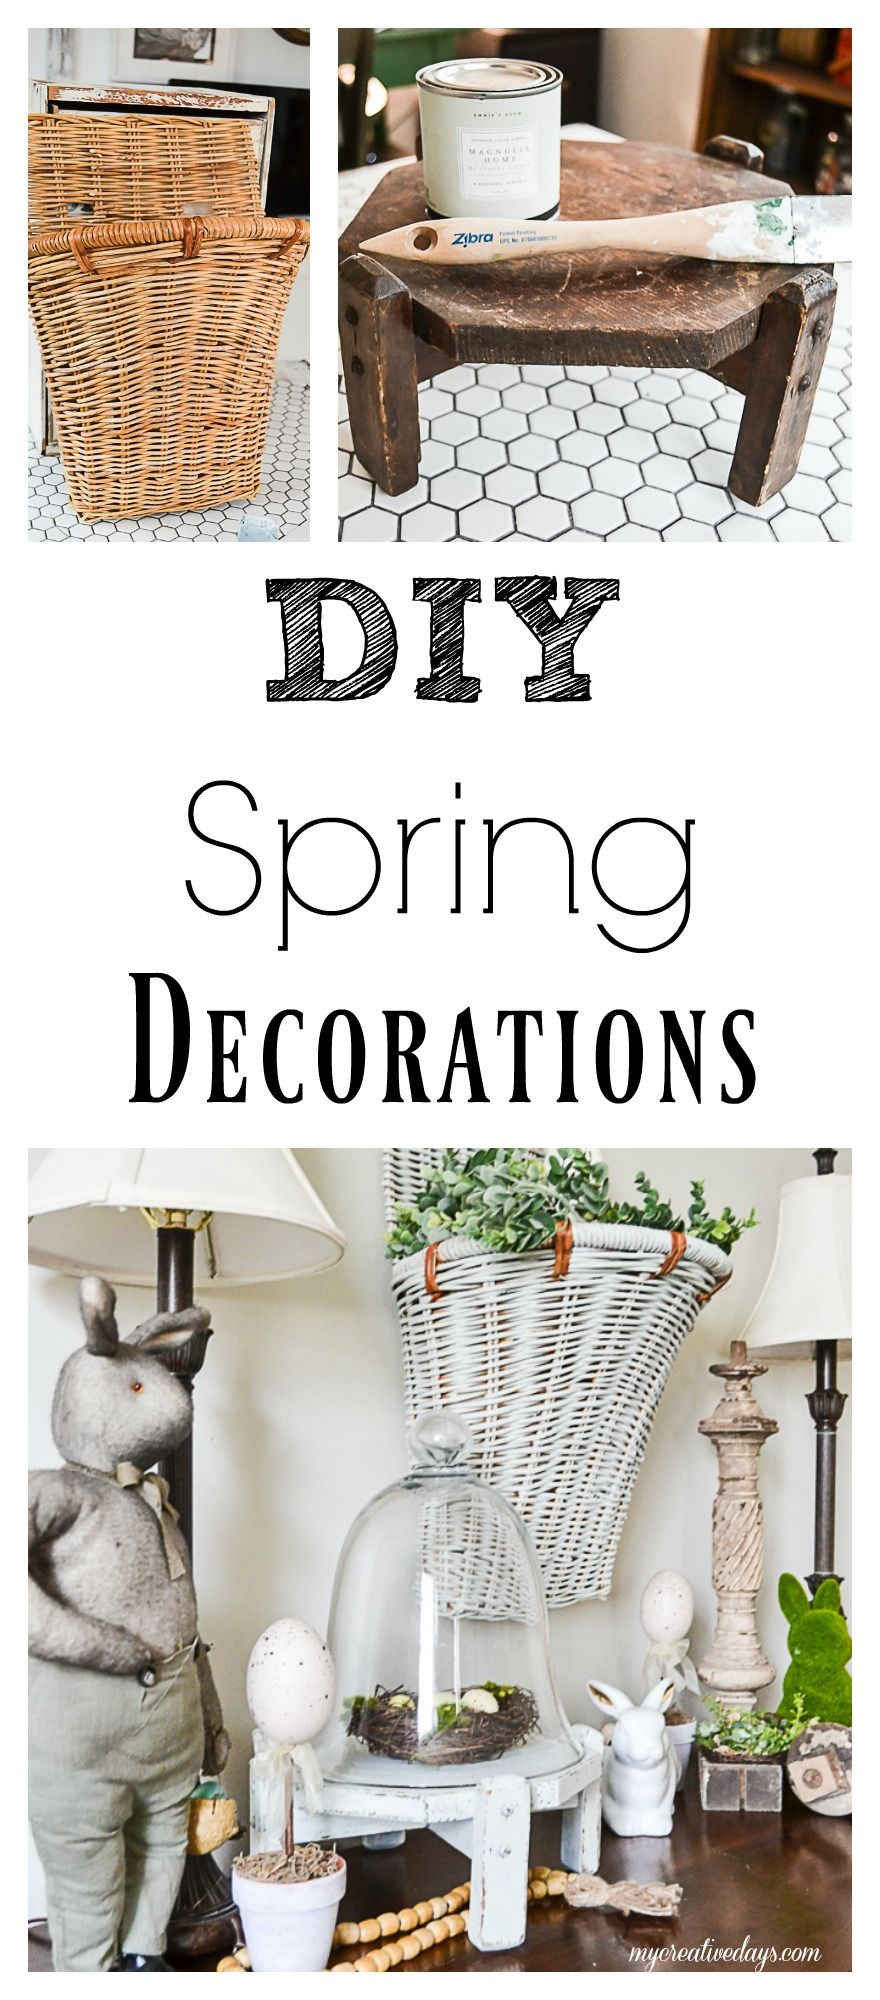 Easy Diy Spring Decorations To Welcome The New Season To Your Home